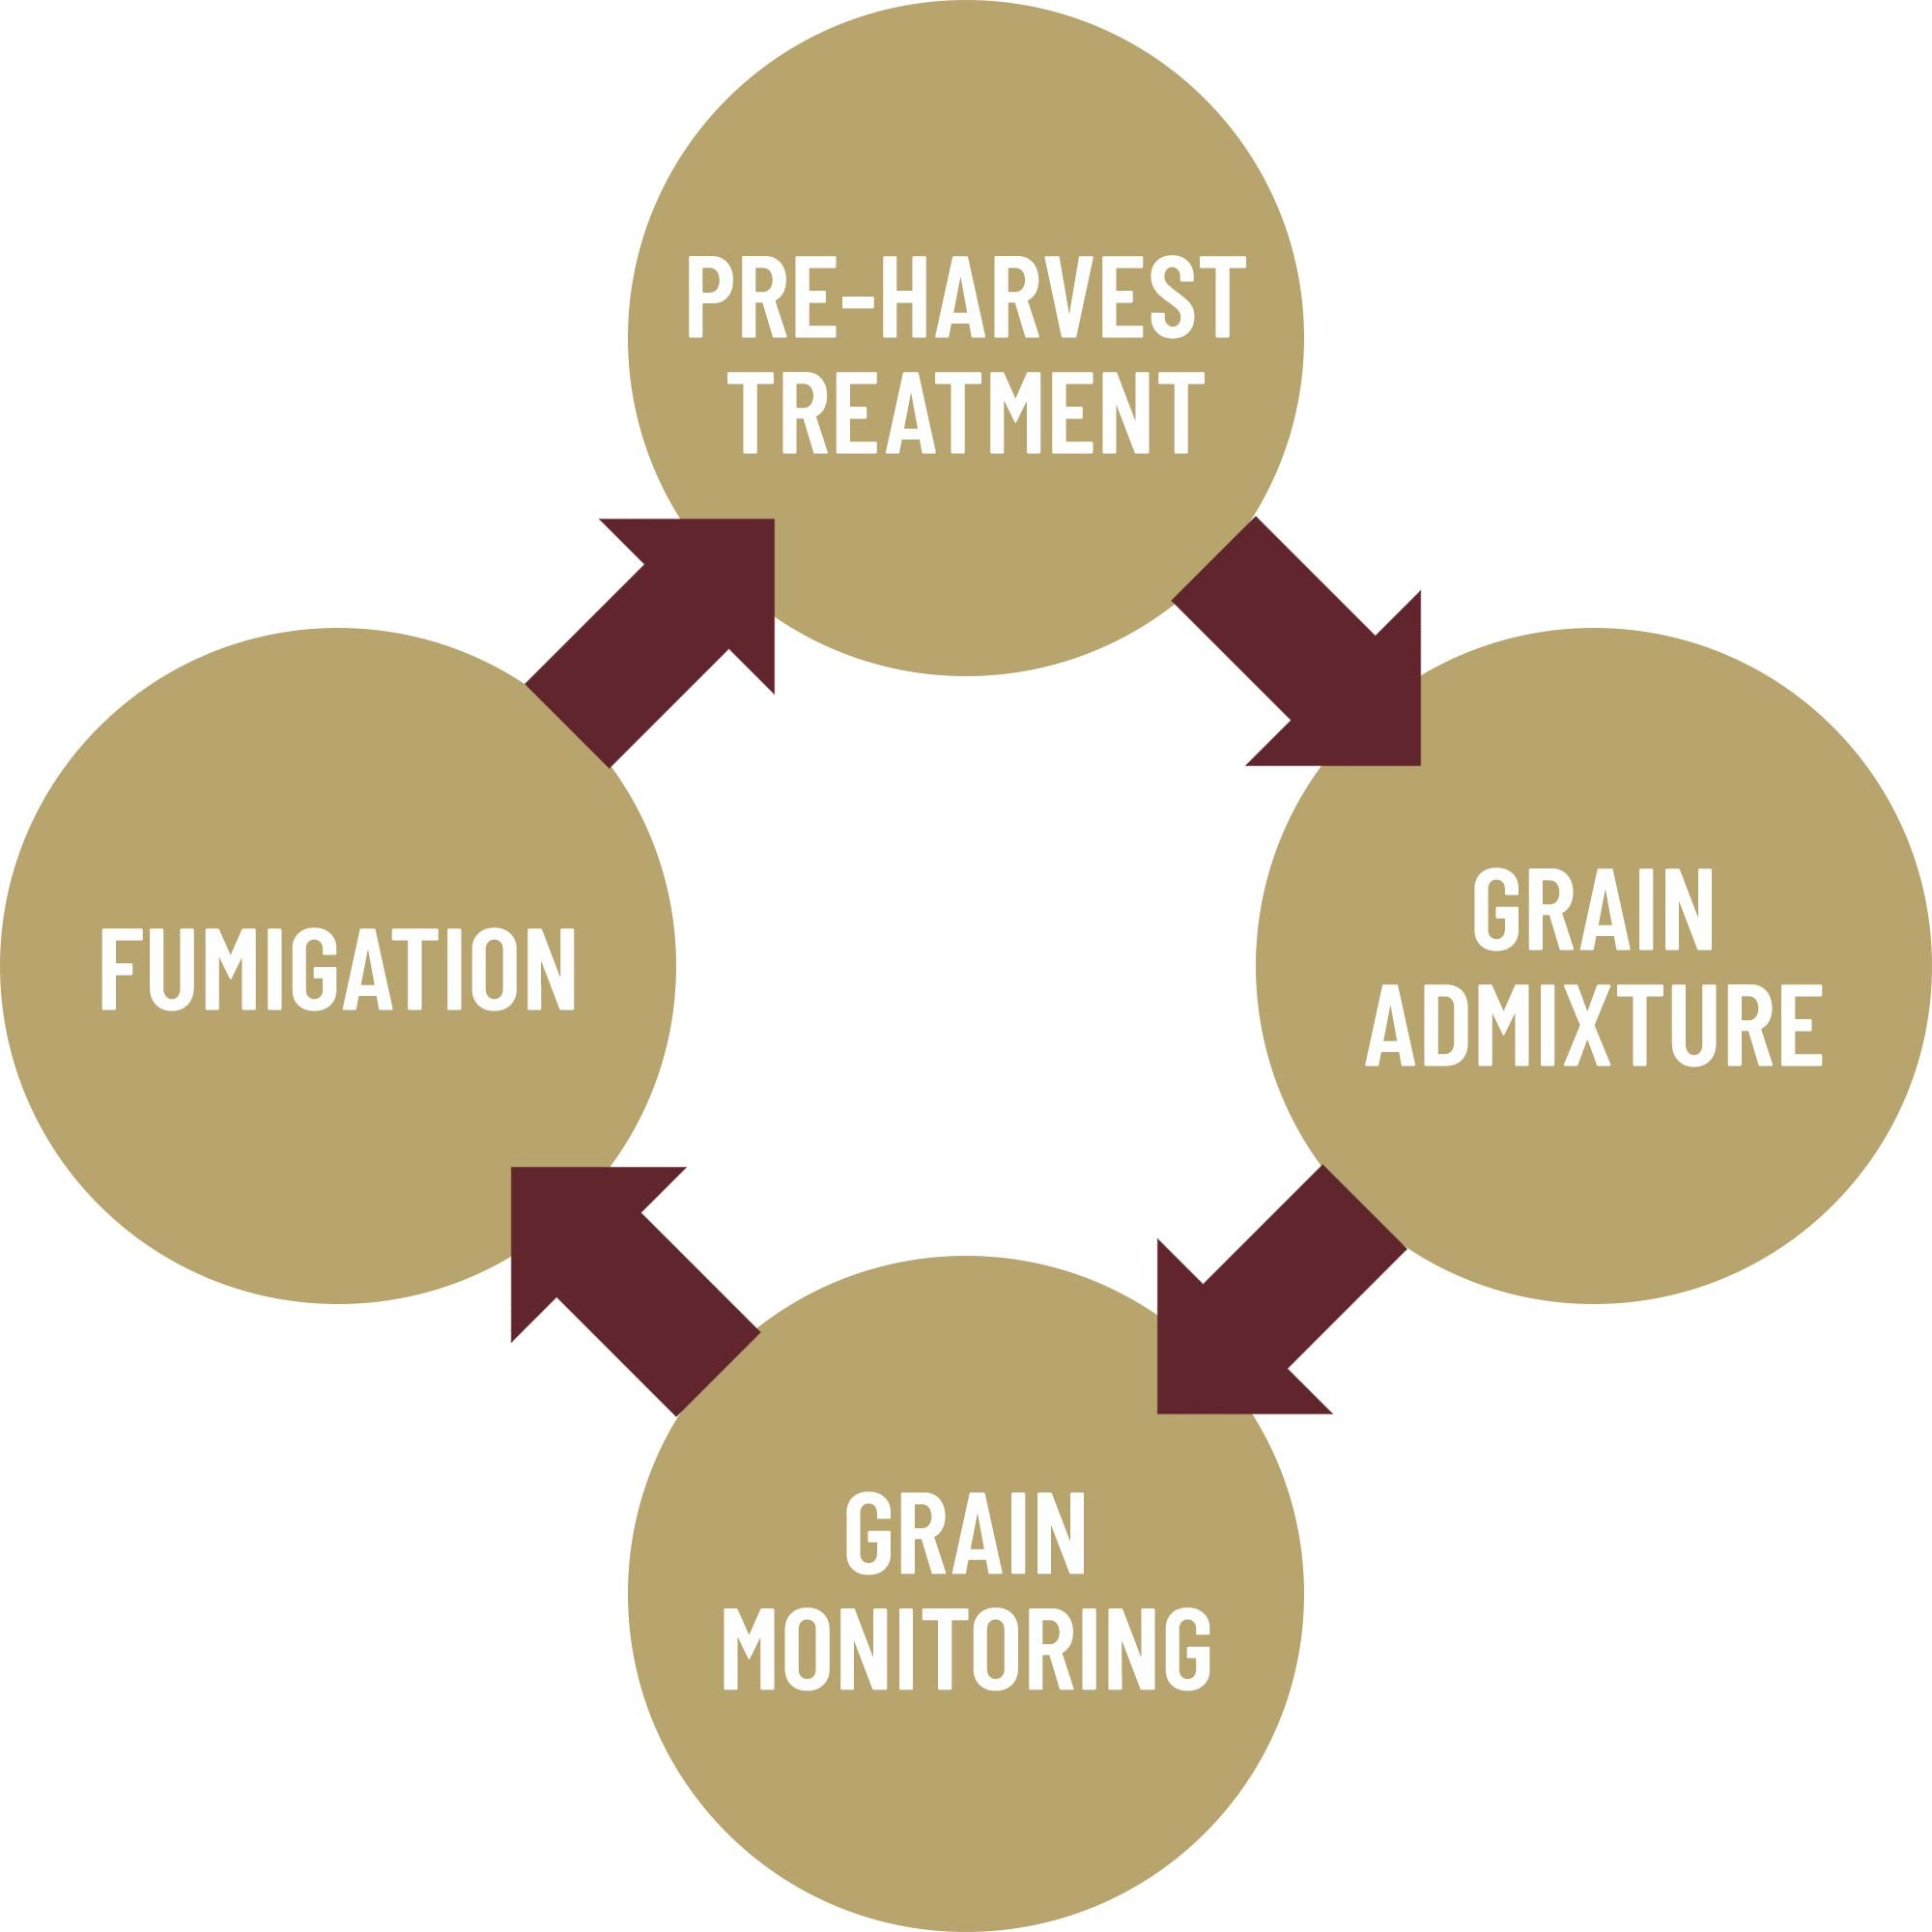 Grain Care for all parts of the storage cycle